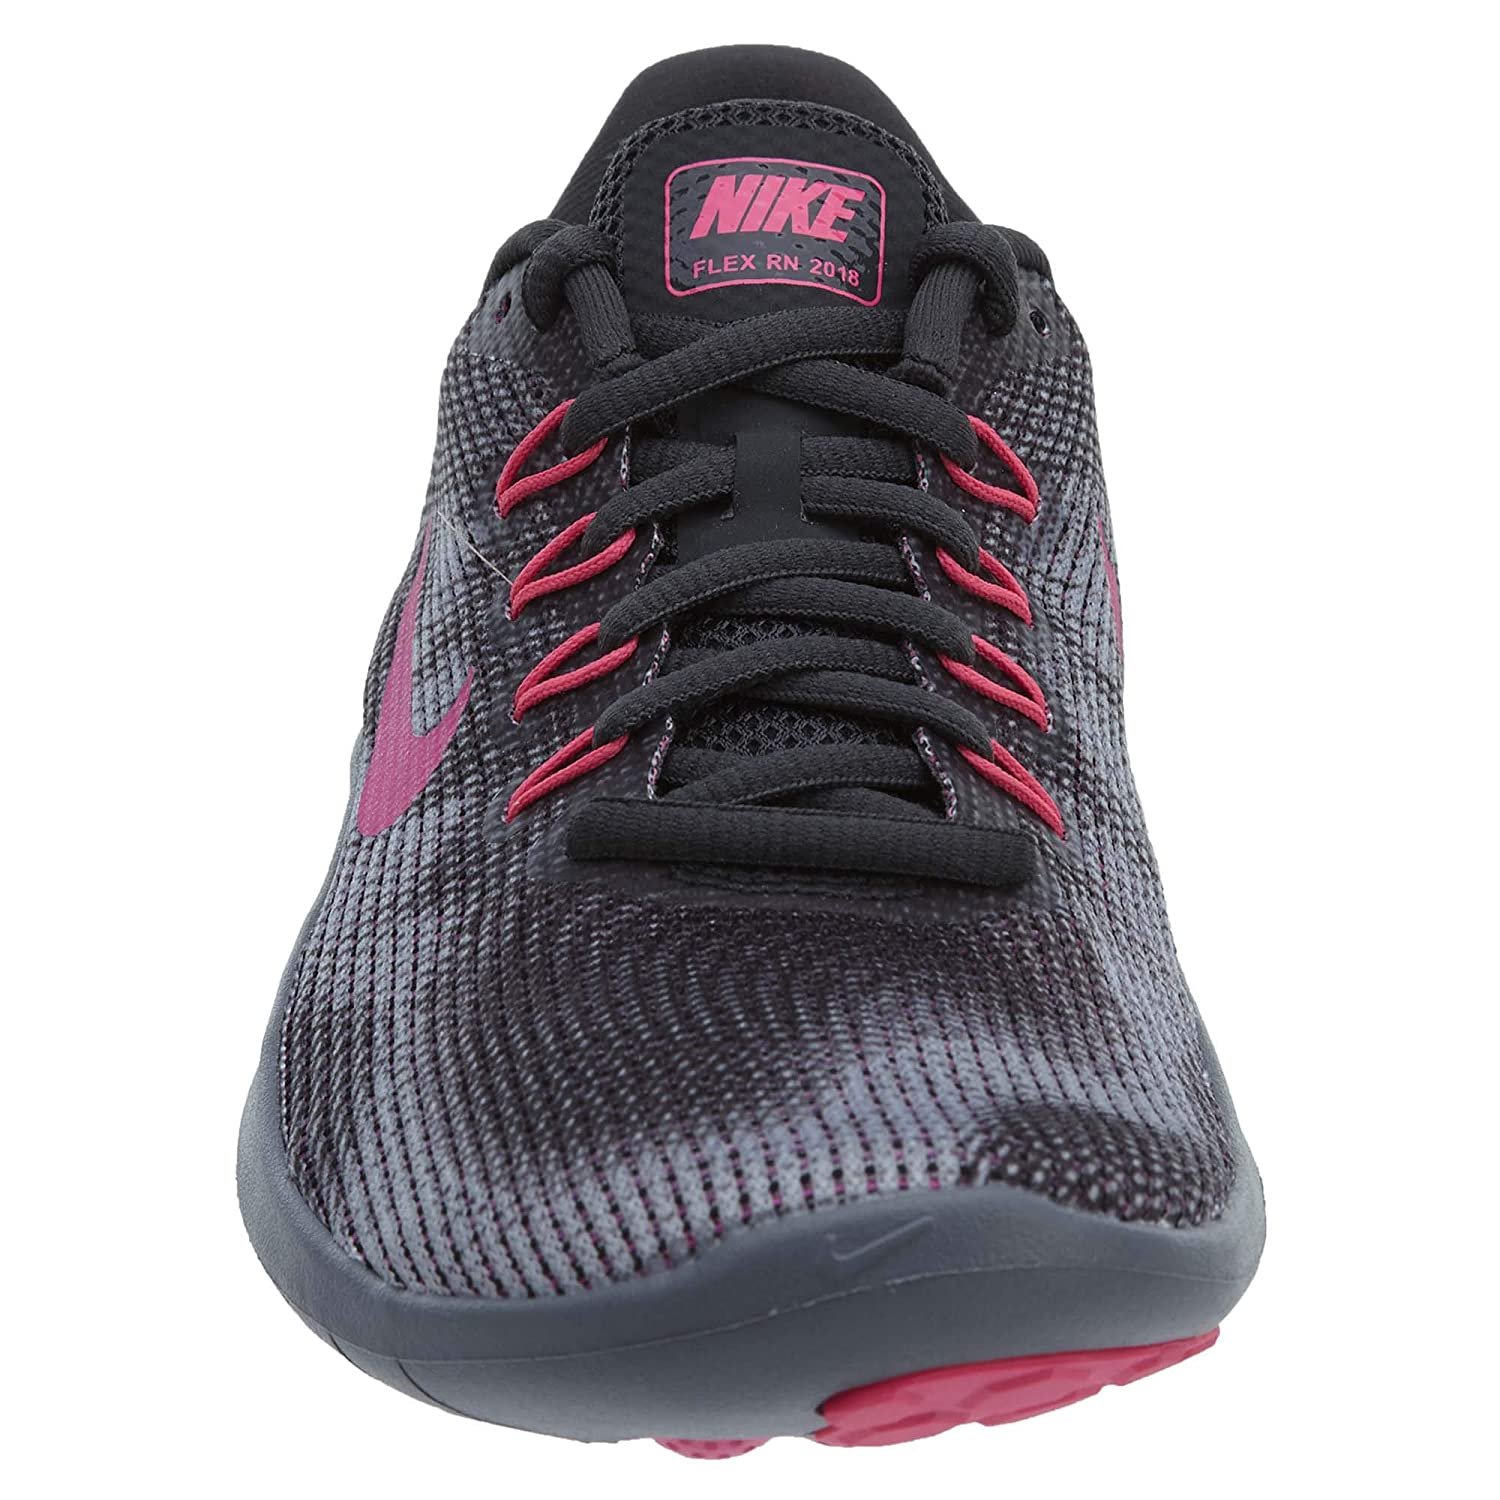 separation shoes 1fcc8 01e87 Amazon.com   Nike Women s Flex RN 2018 Running Shoe (8.5 B(M) US,  Anthracite Hyper Pink Wolf Grey)   Fashion Sneakers